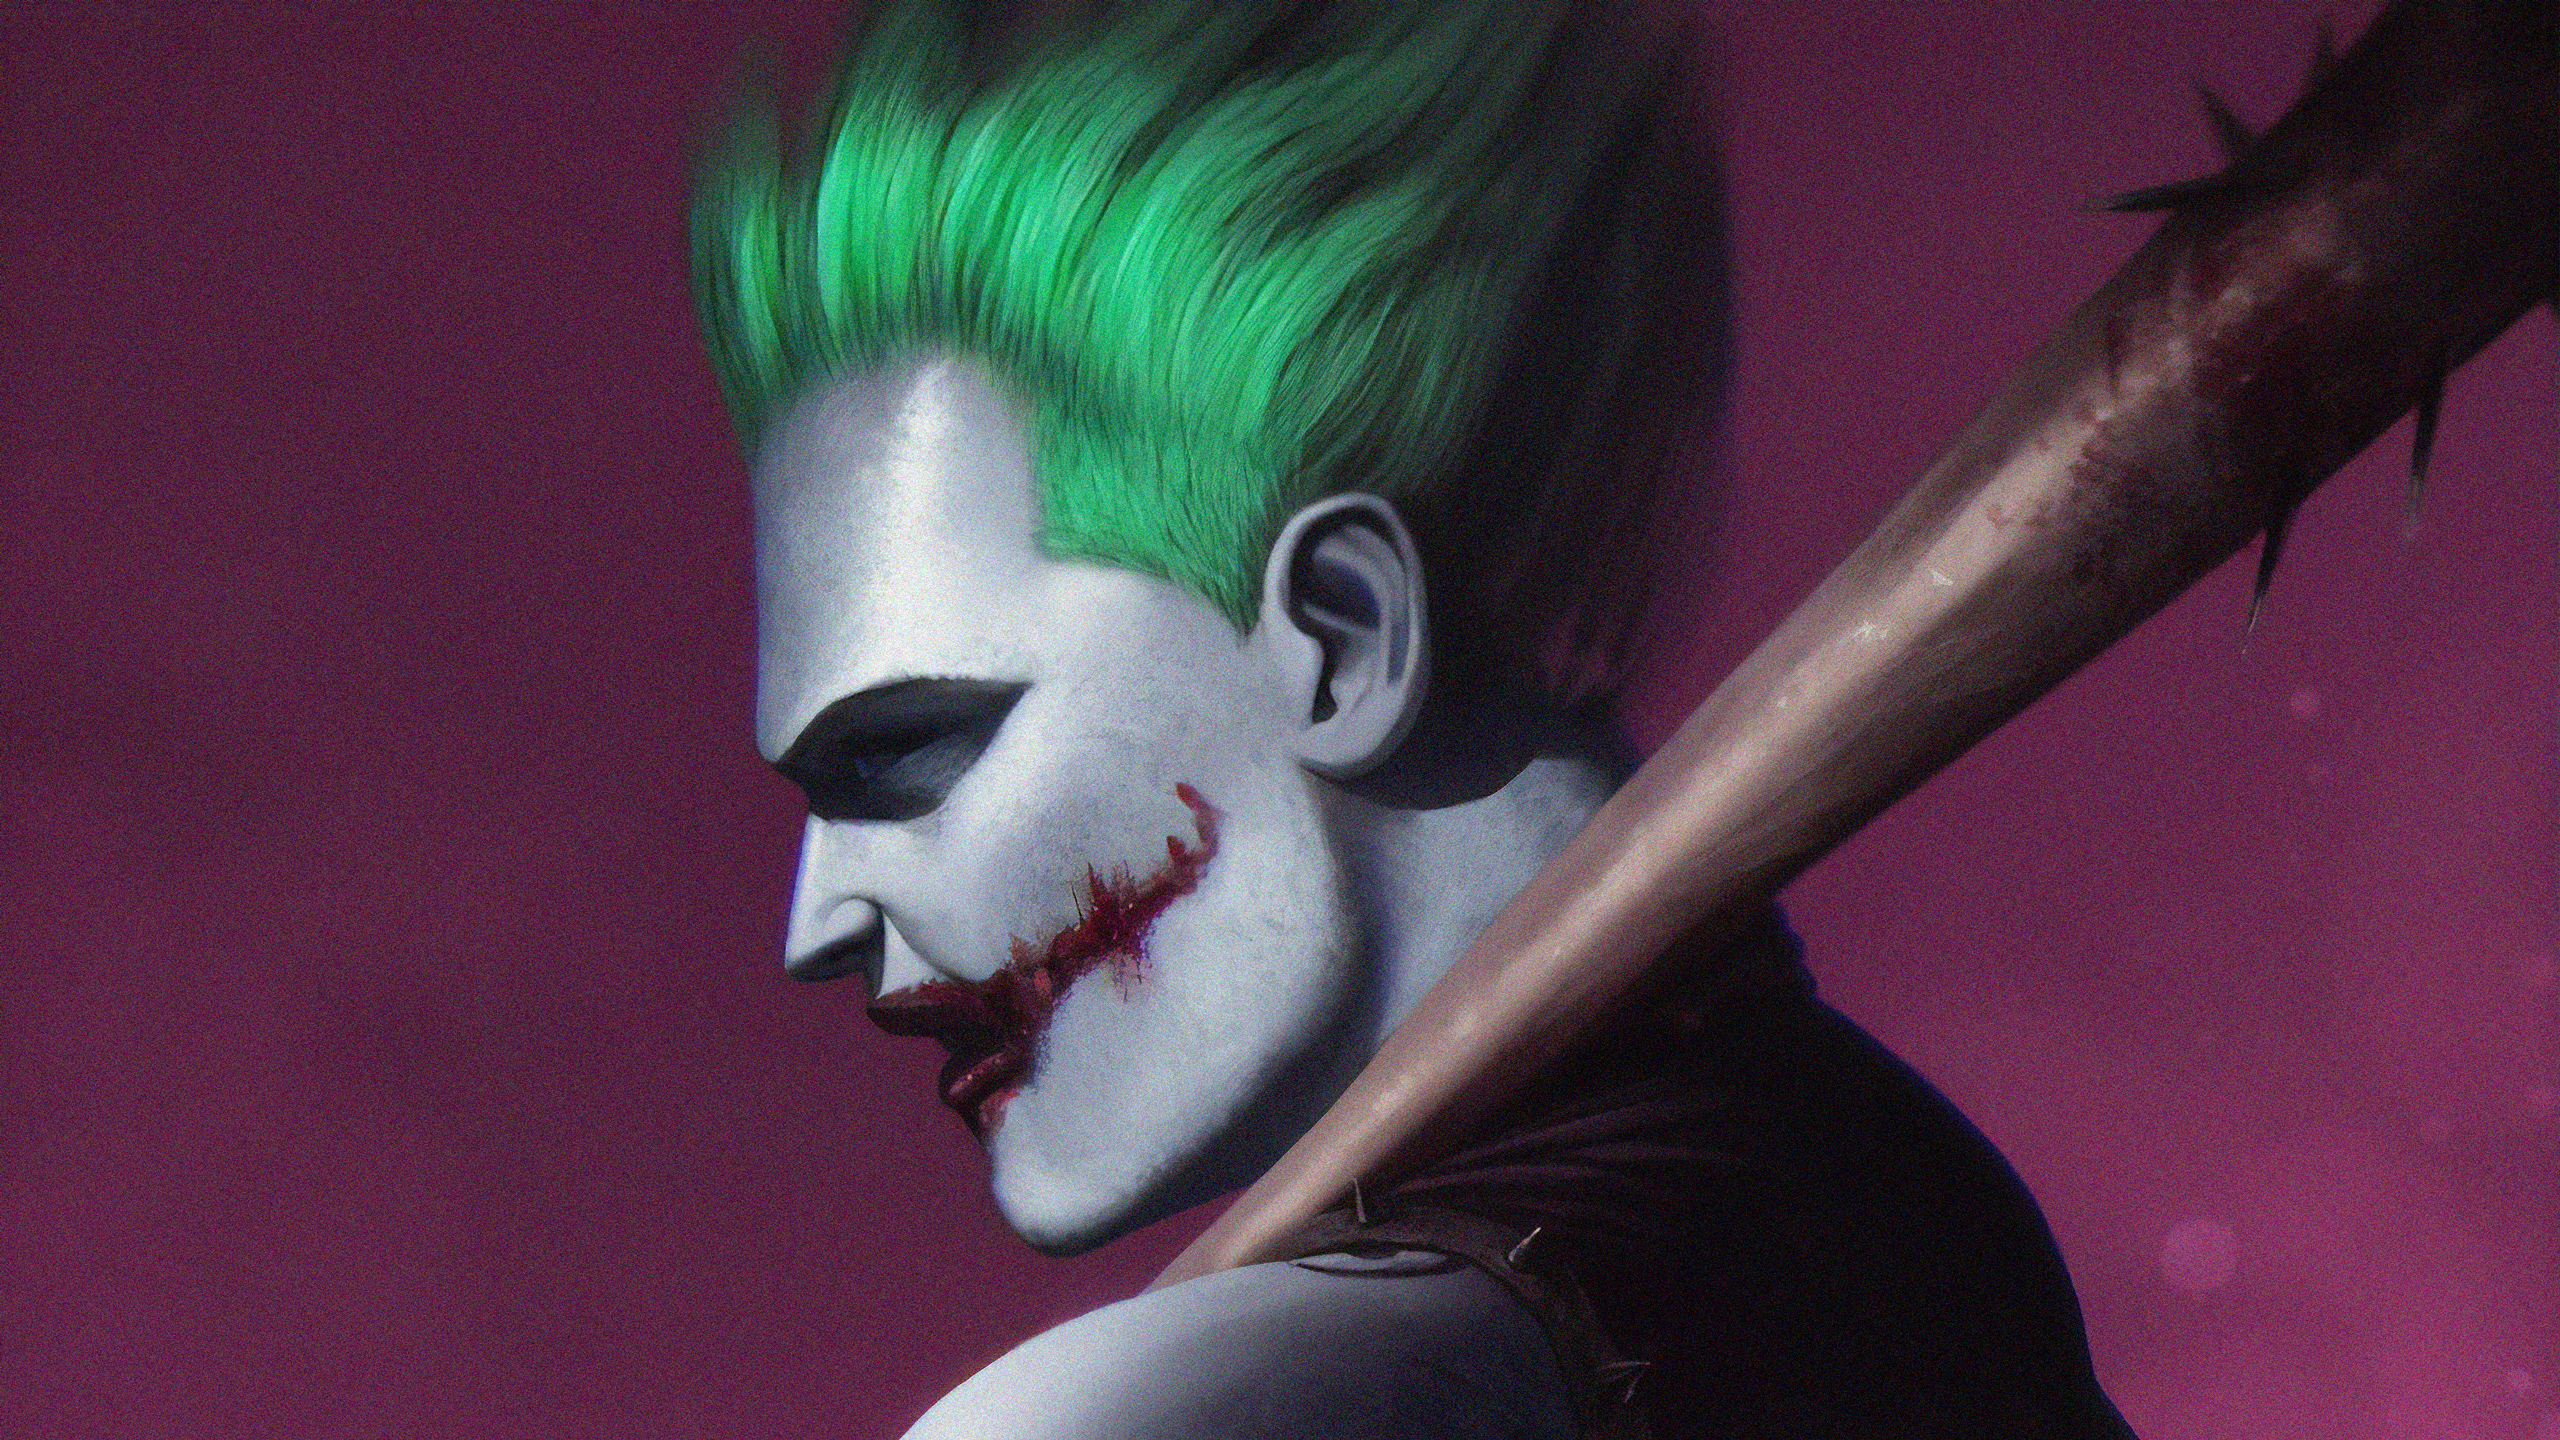 Baseball Bat Dc Comics Joker 2560x1440